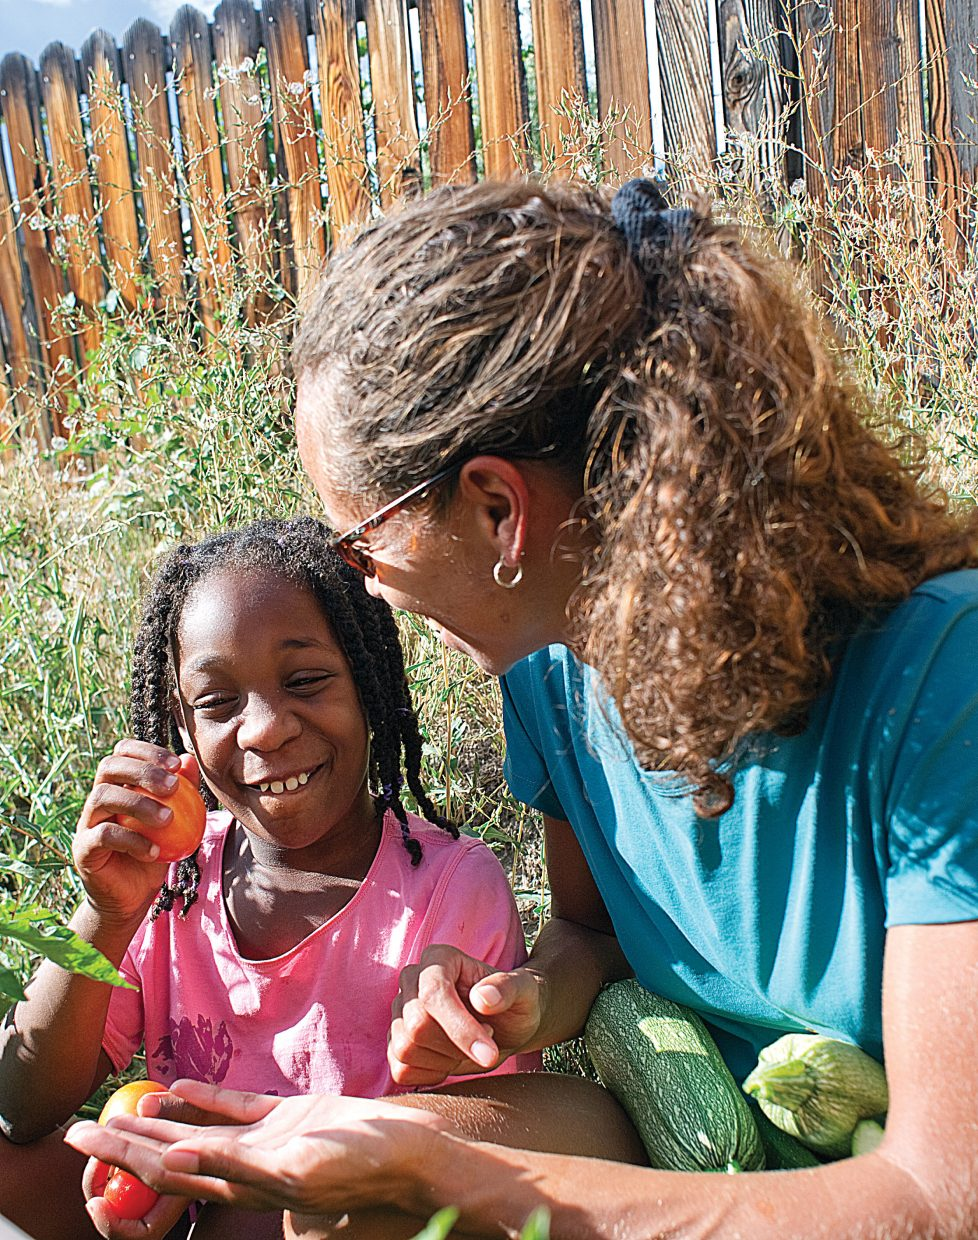 Kia Smith and her 9-year-old daughter Nevaeh work in the garden at their Steamboat Springs home.